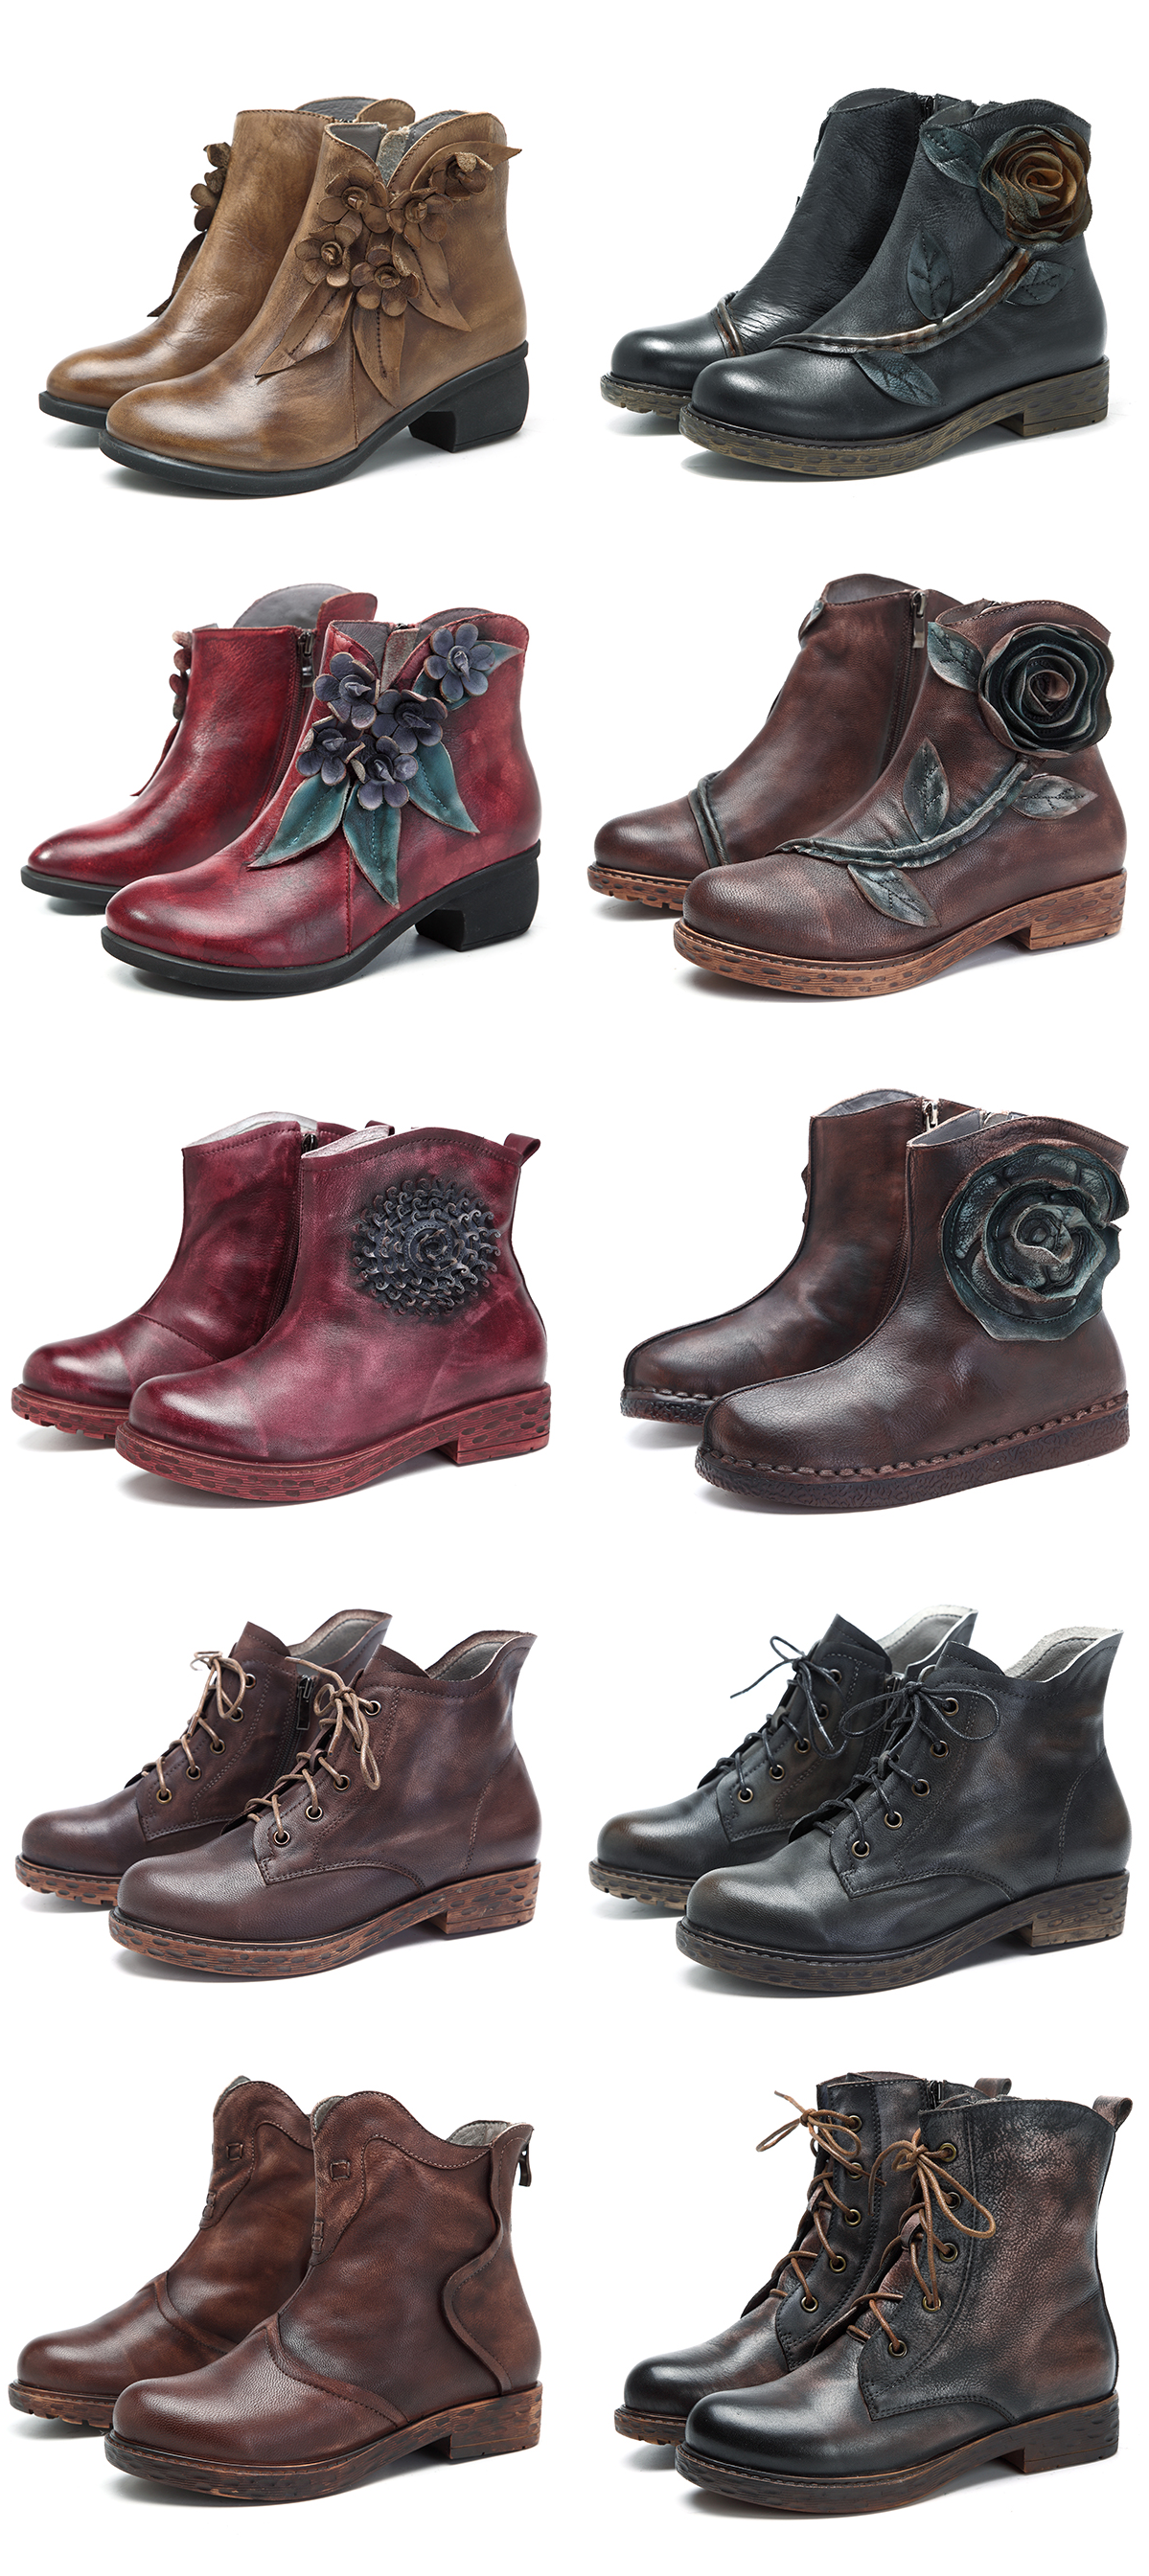 Find diffirent kinds of shoes,boots and winter high heel